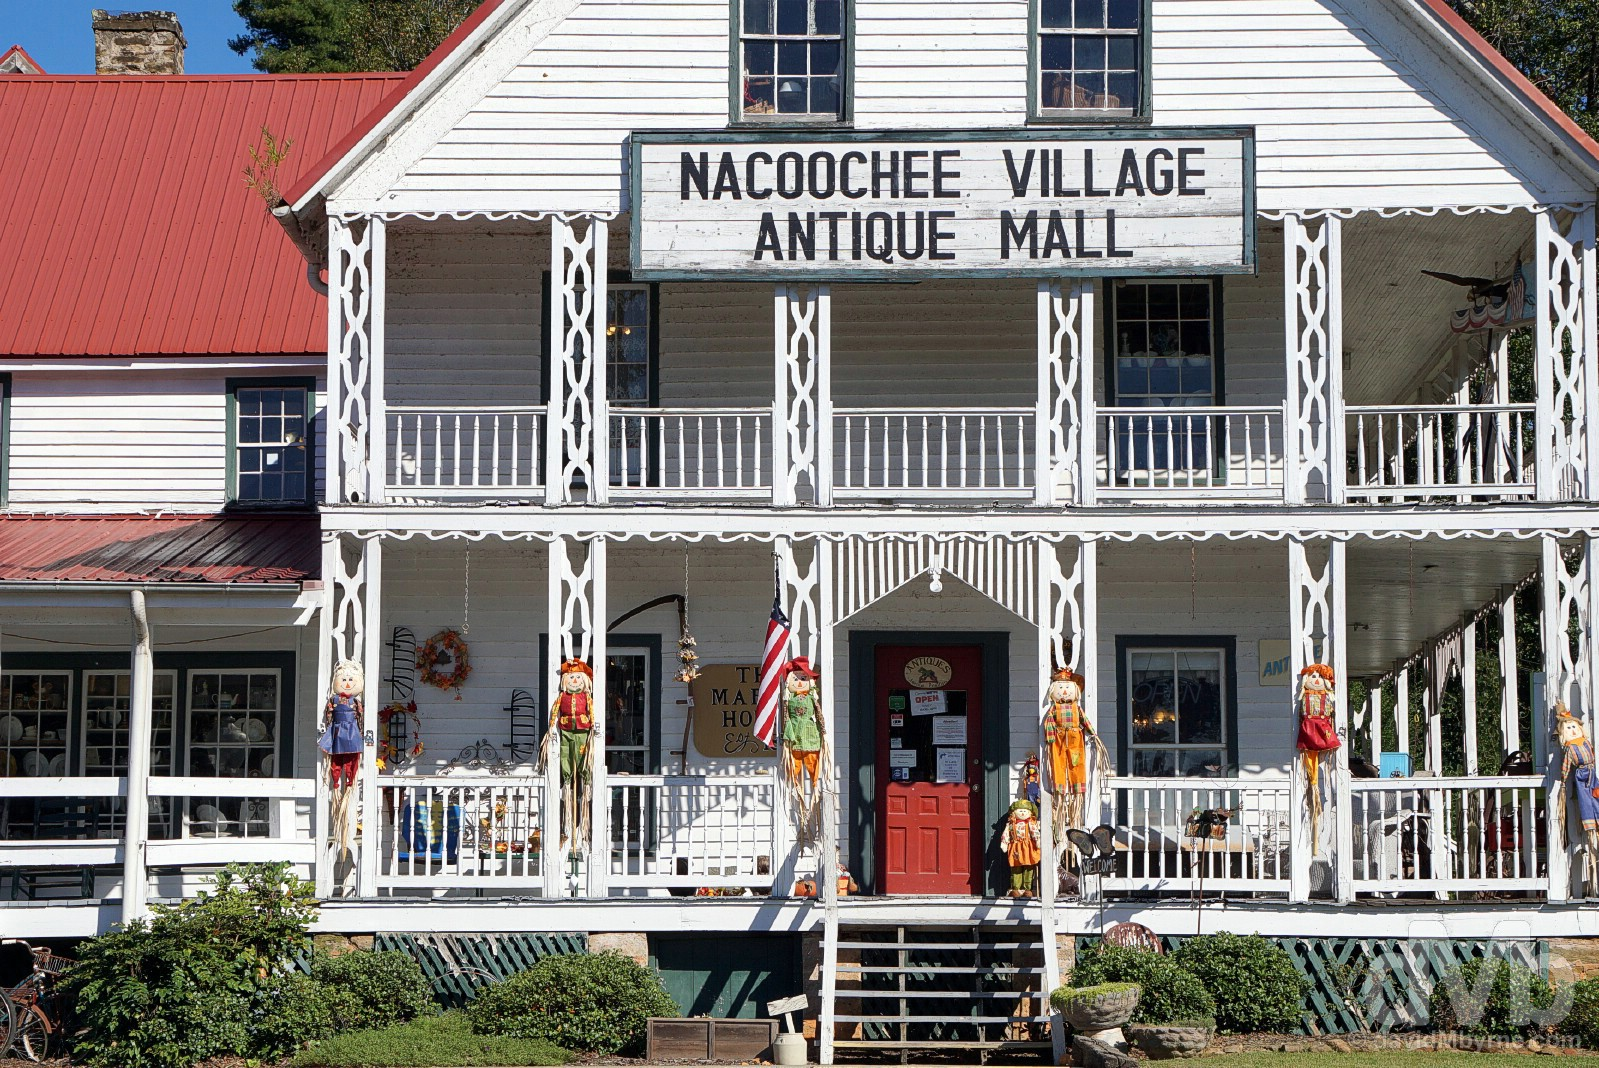 Nacoochee Village Antique Mall, outside Helen, White County, northern Georgia, USA. September 22, 2016.